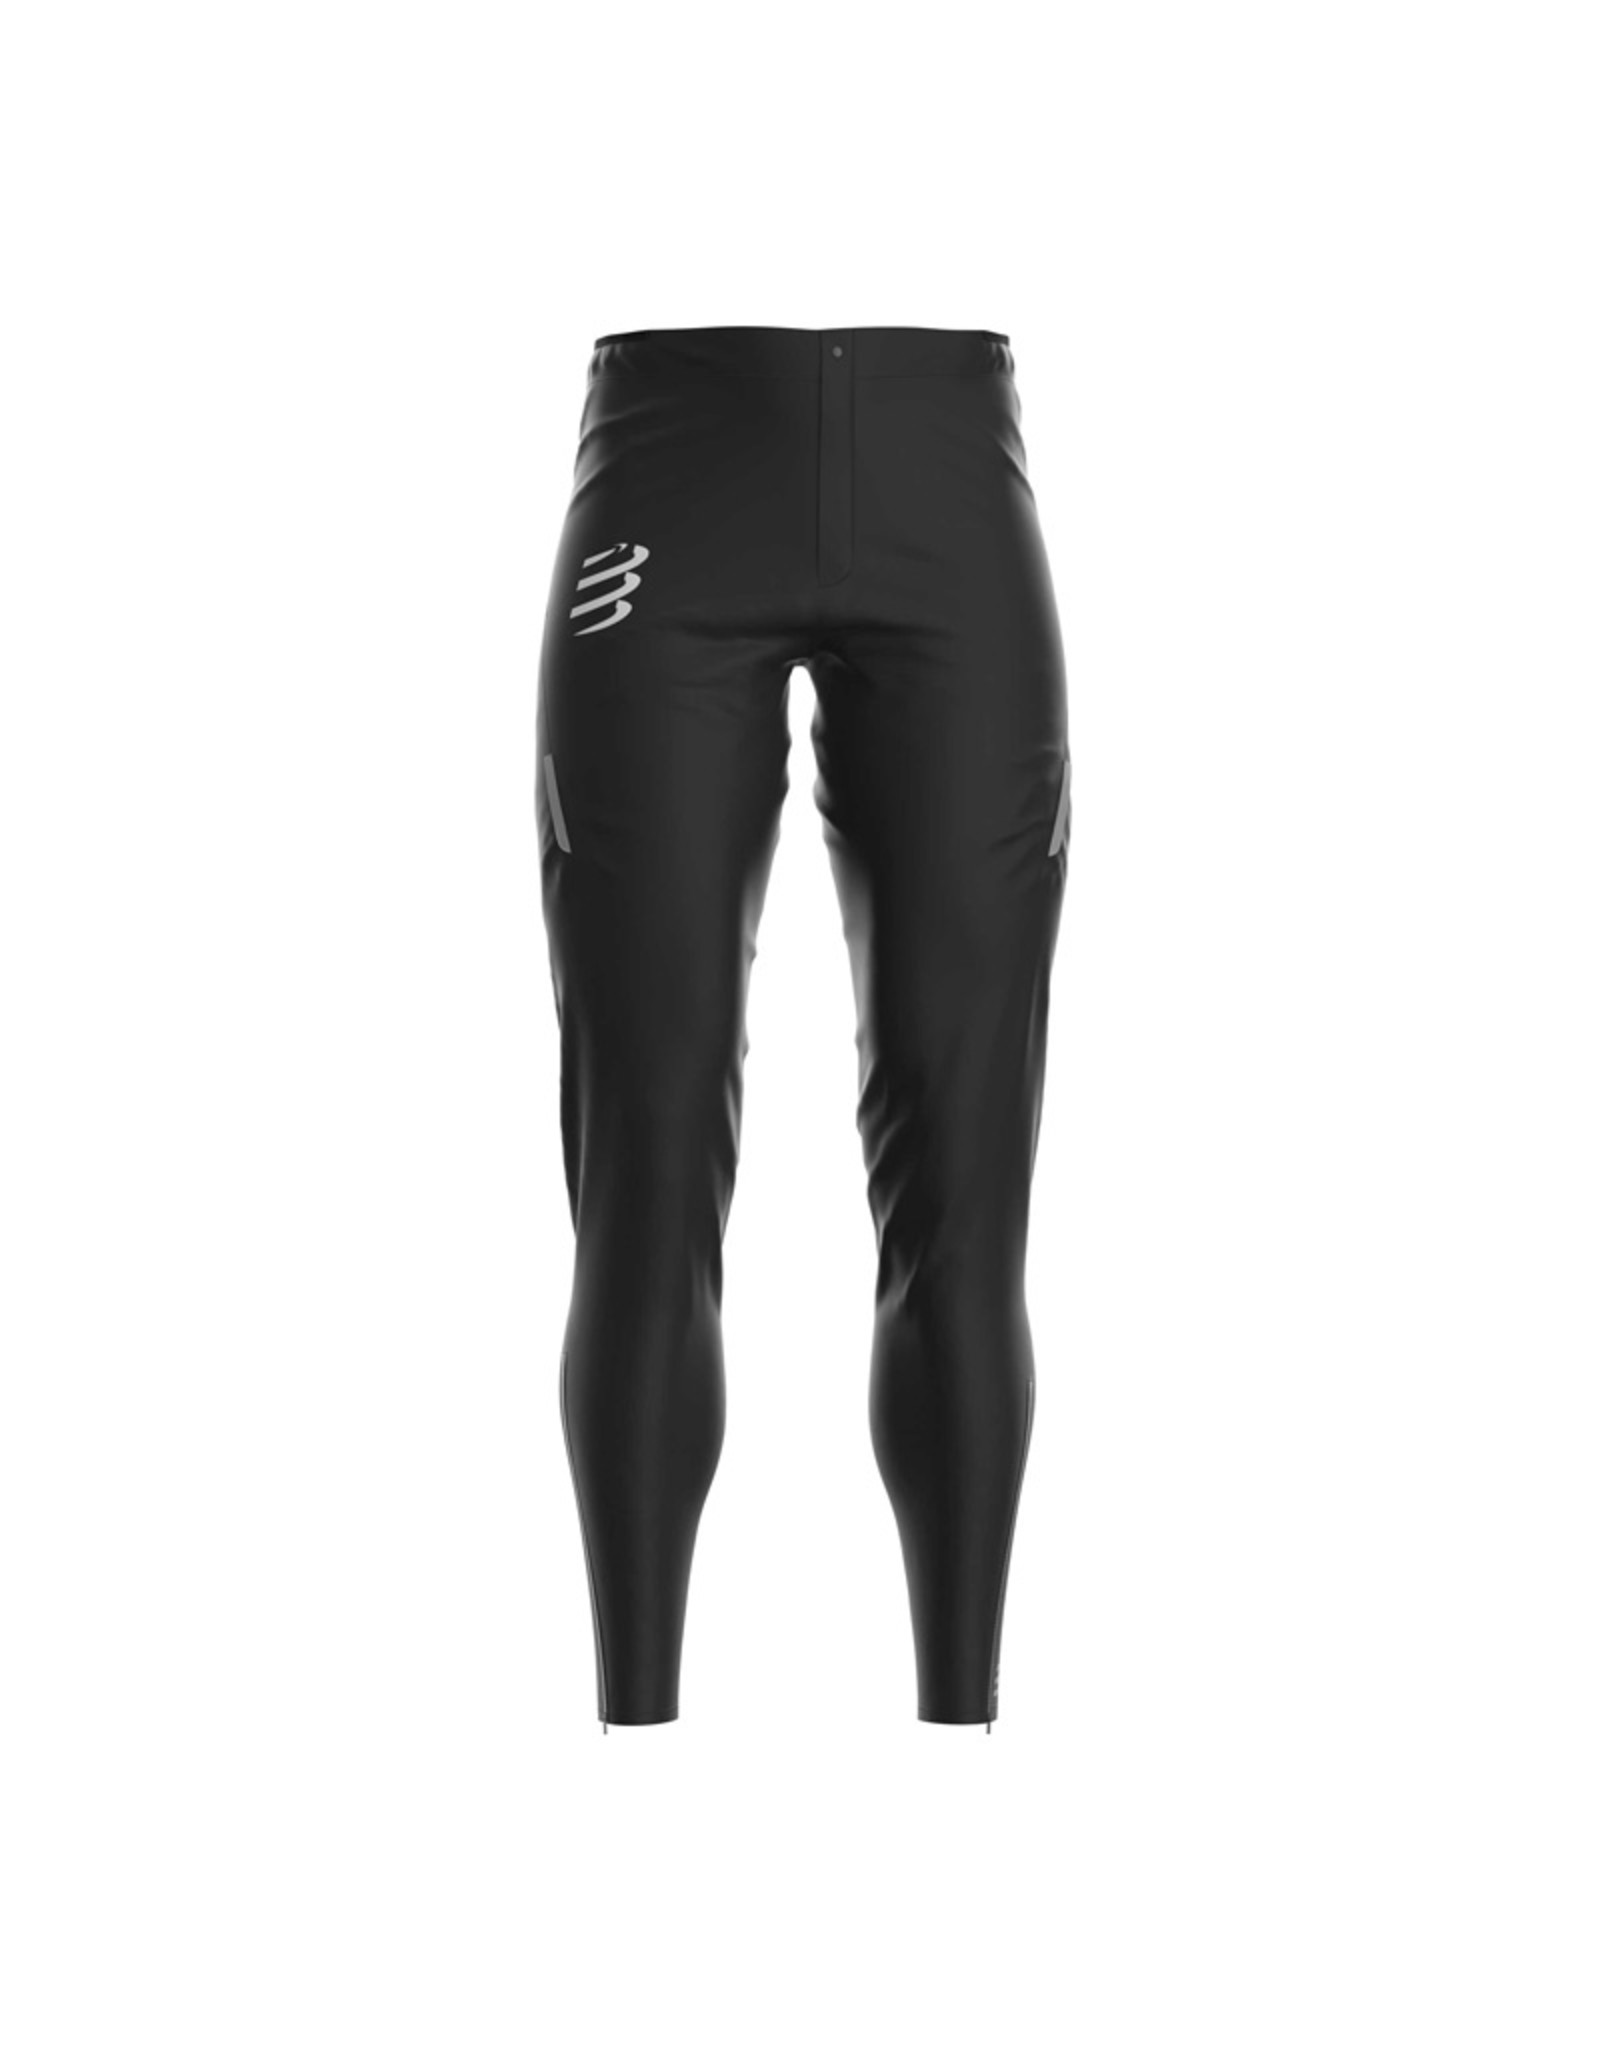 Compressport Hurricane Waterproof 10/10 Pants Pantalon Impermeable - Noir